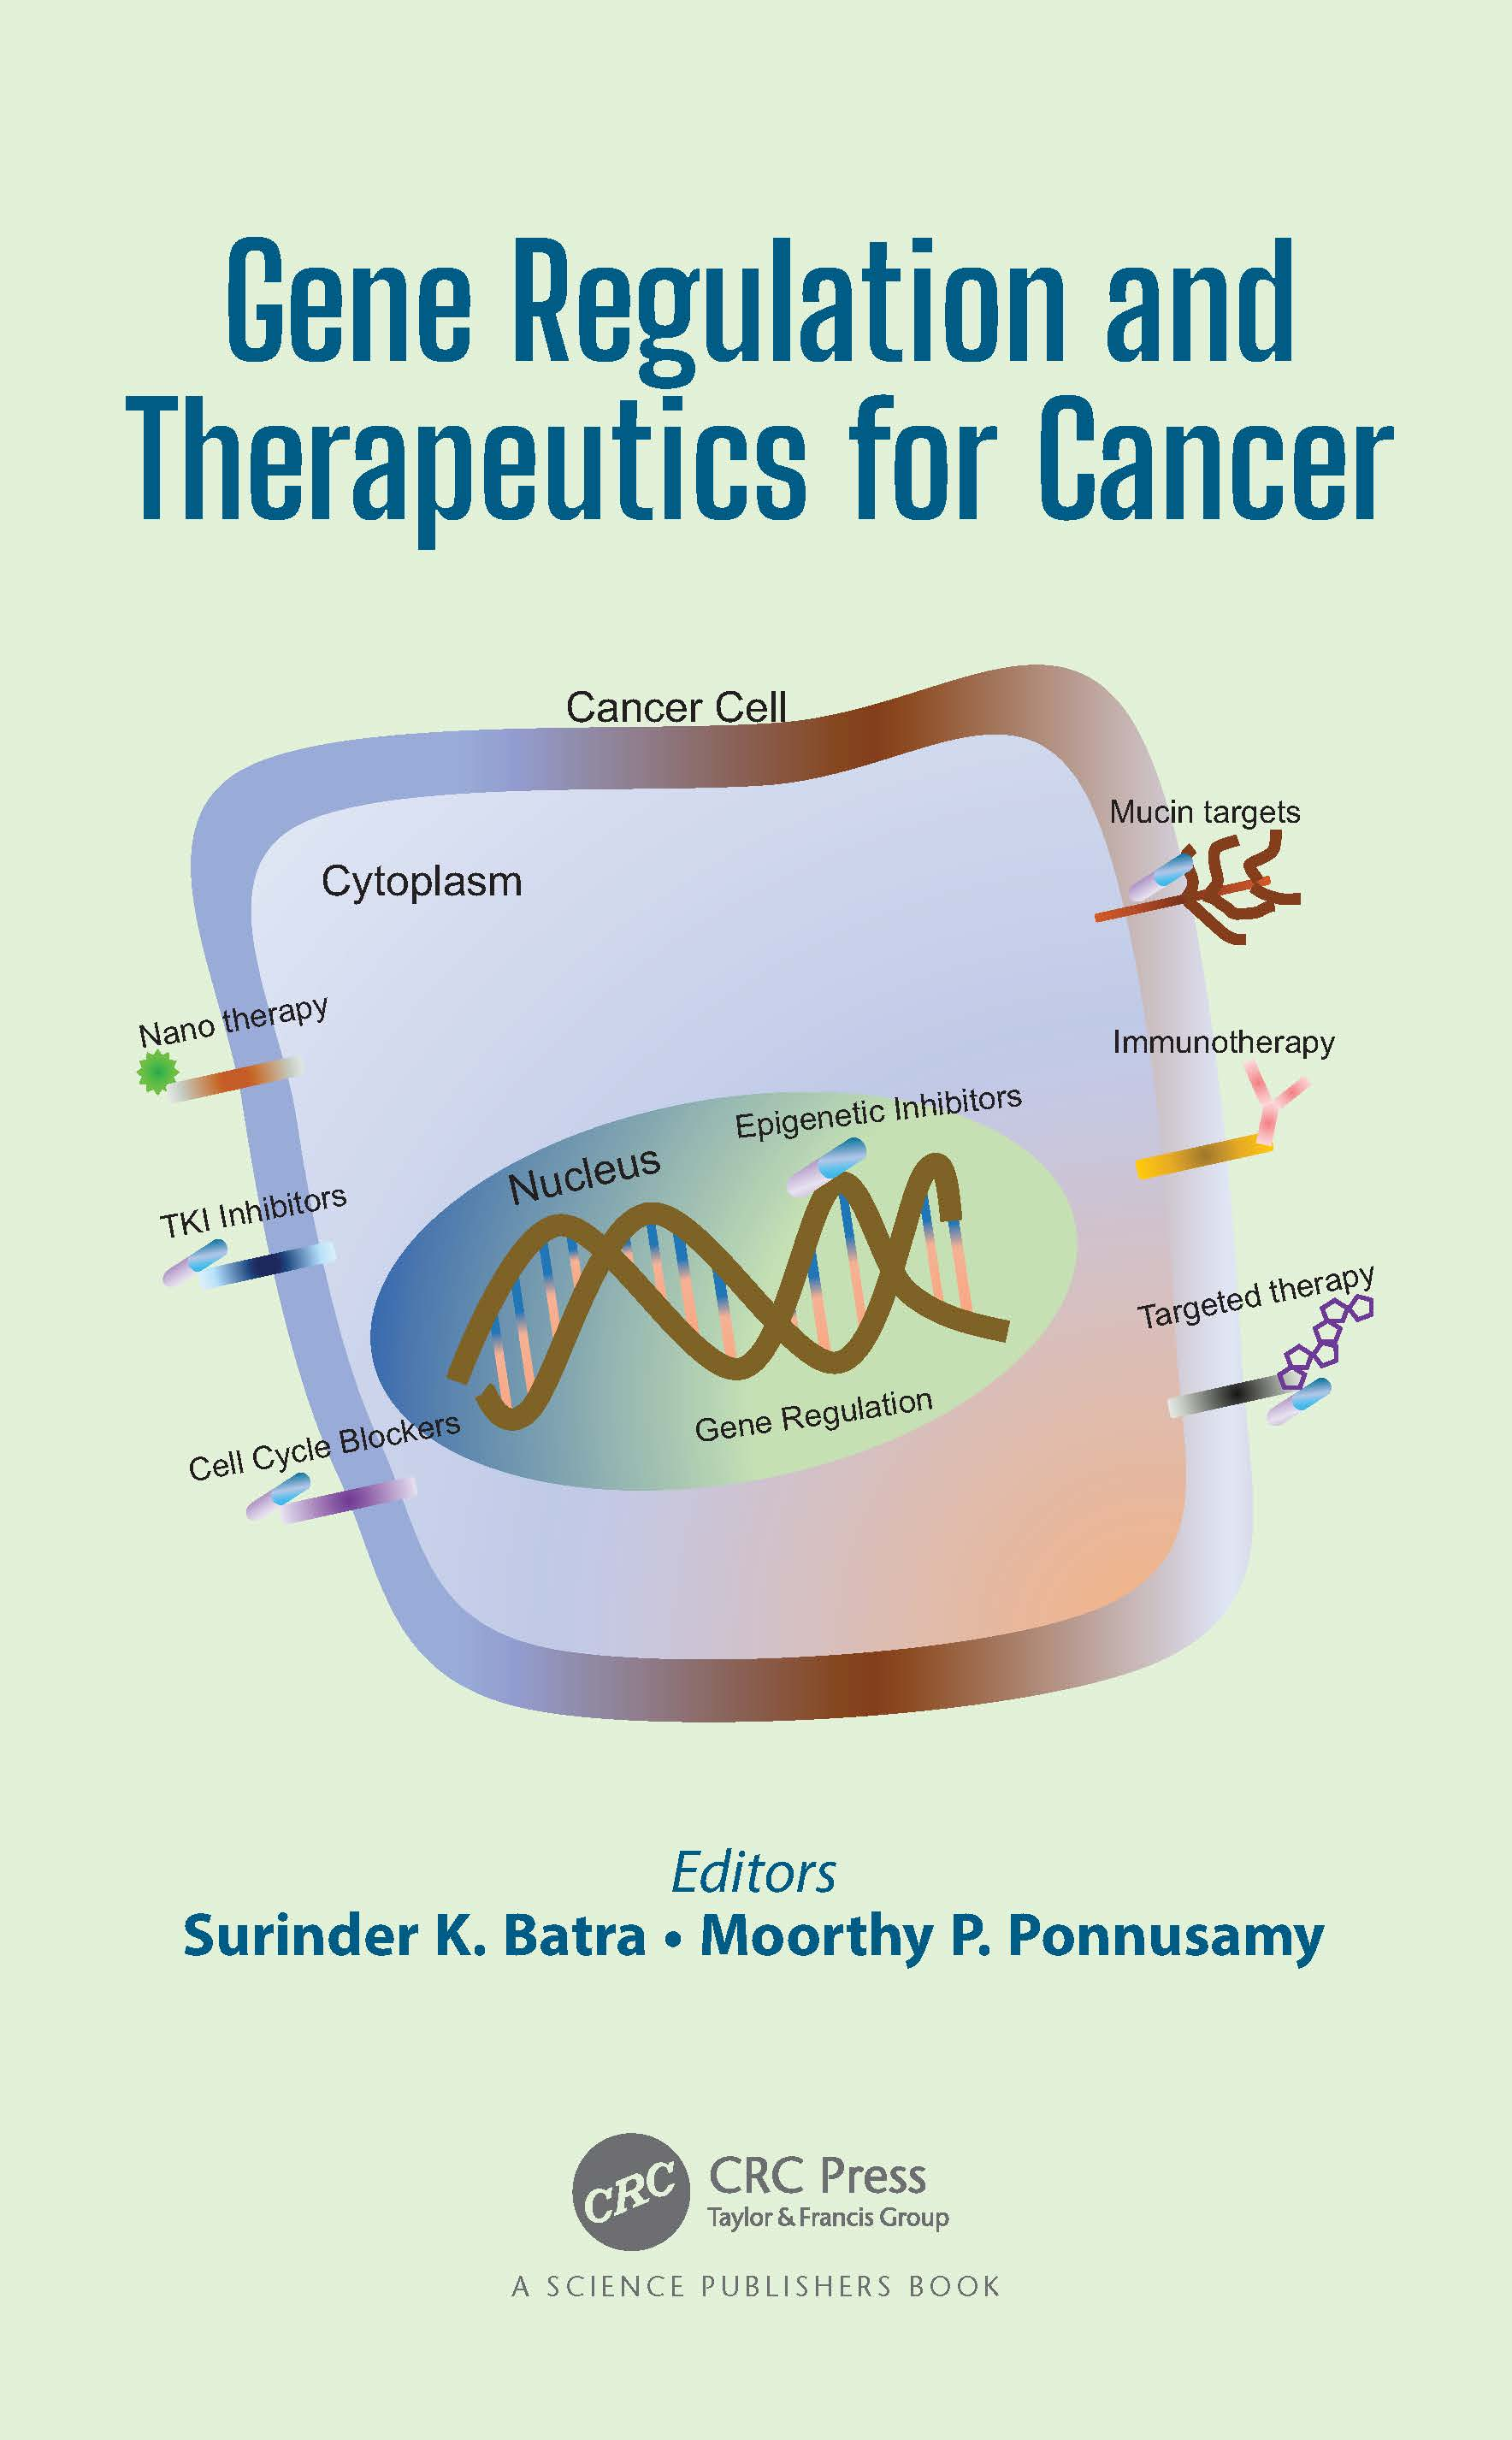 Regulation and Targeting of MUCINS in Pancreatic Cancer